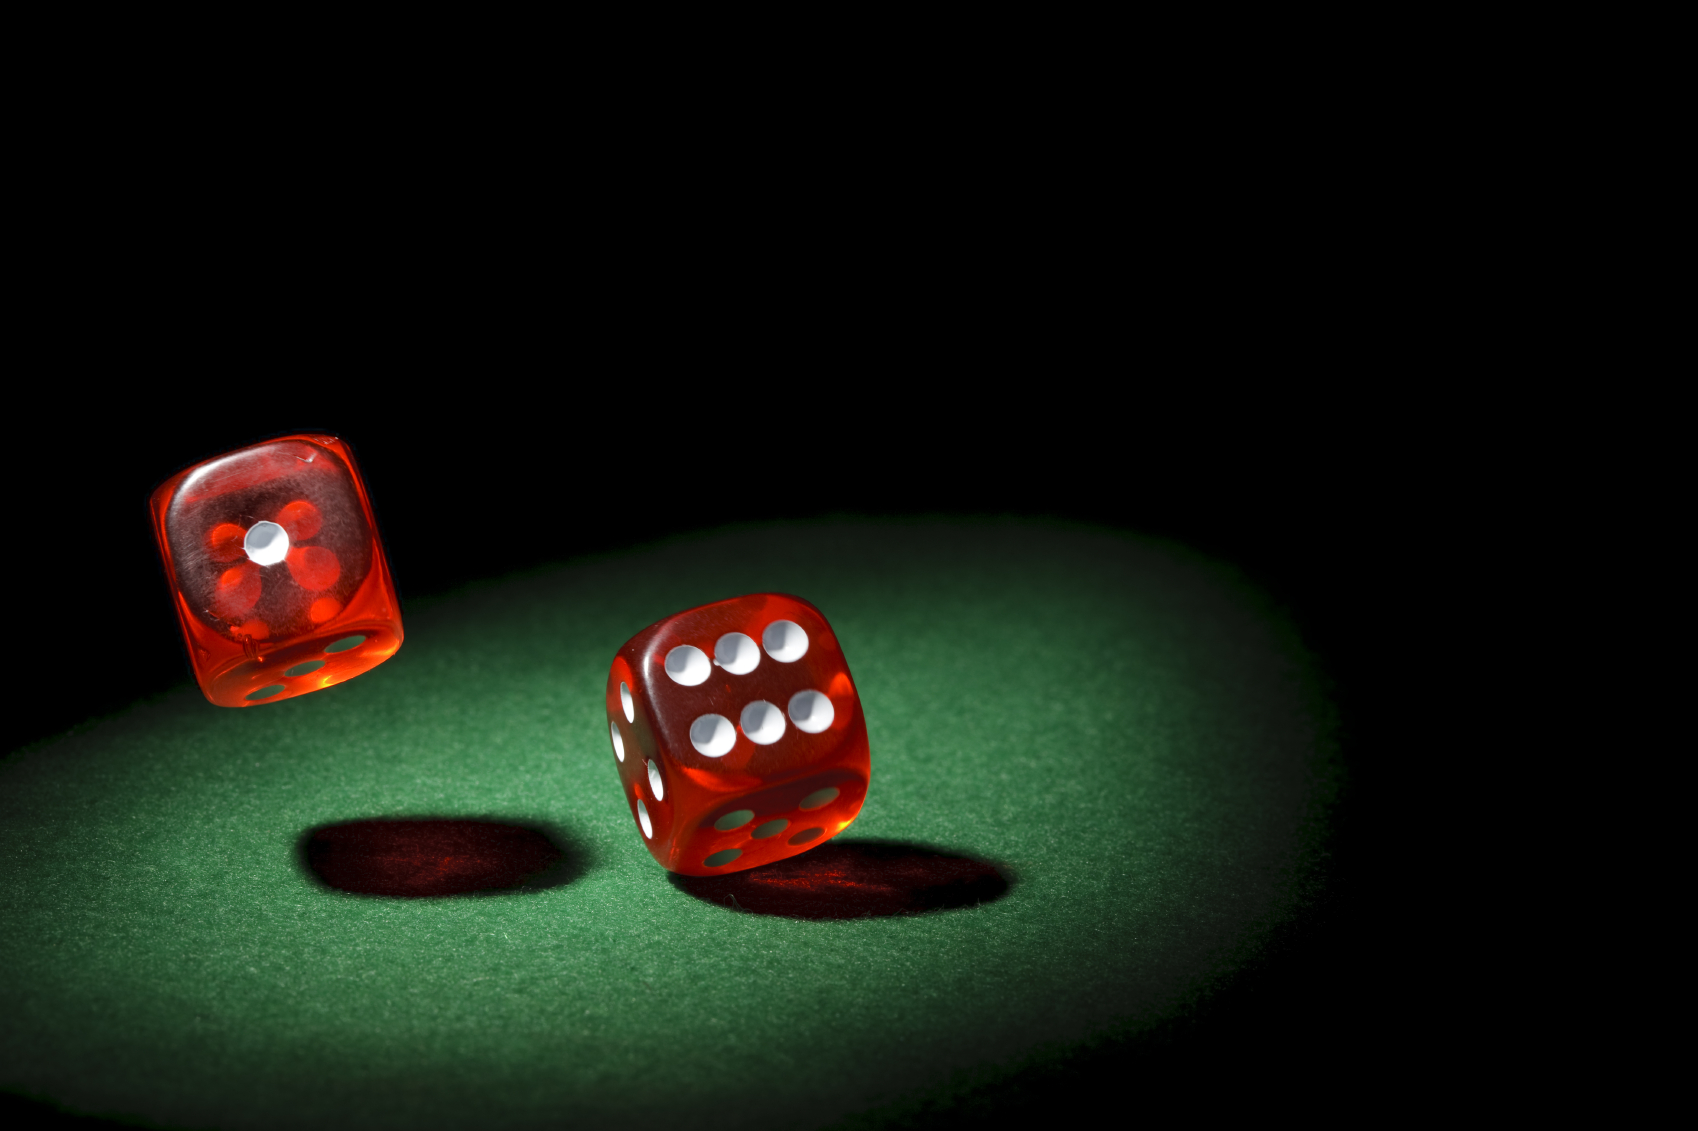 What Are Some Of The Most Effective Ways To Beat The Casino?